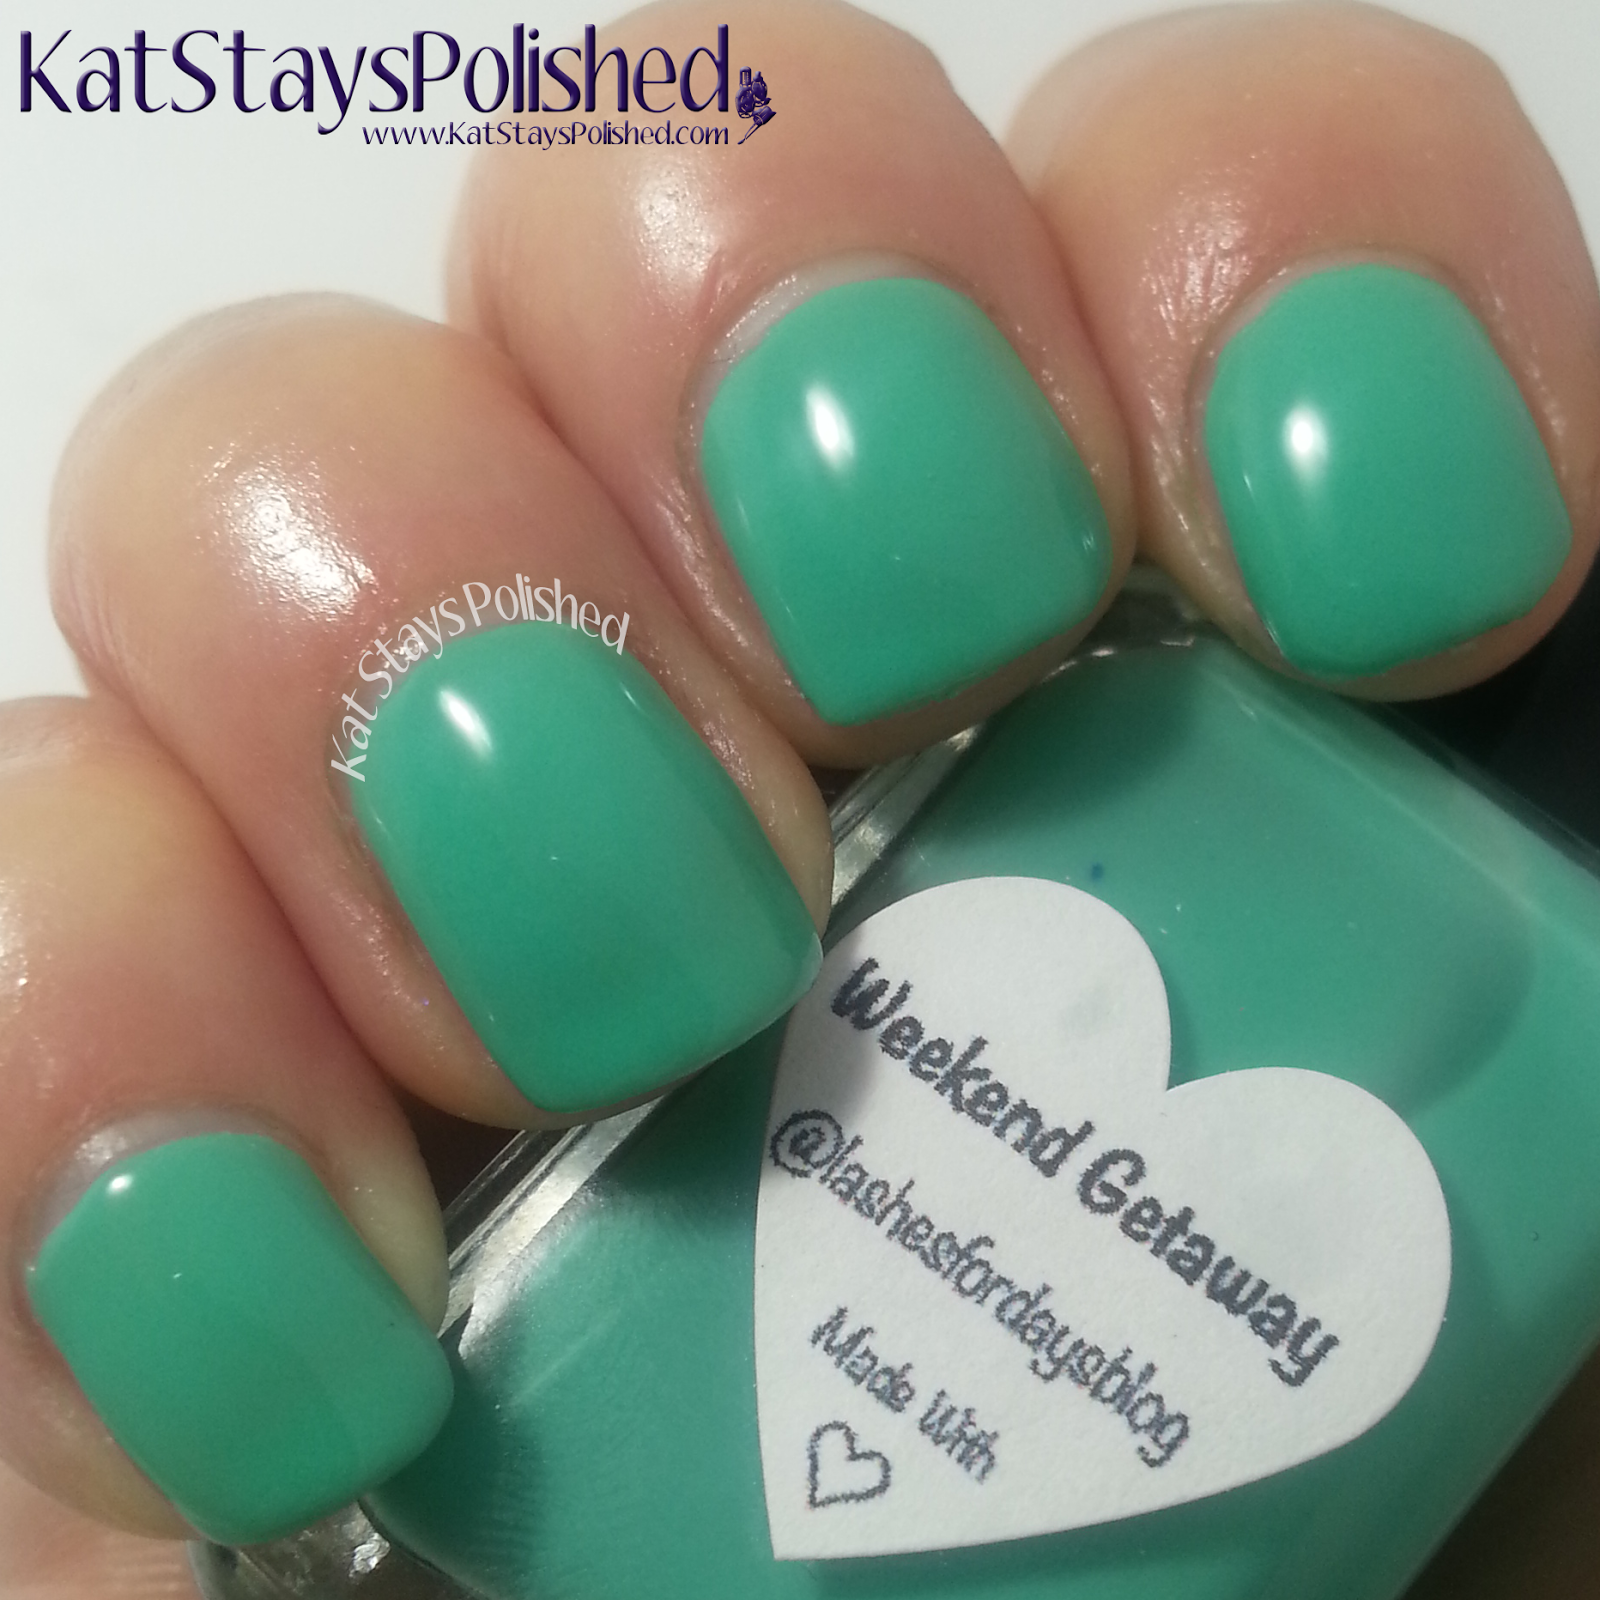 Polished for For Days - Gloss48 - Weekend Getaway | Kat Stays Polished